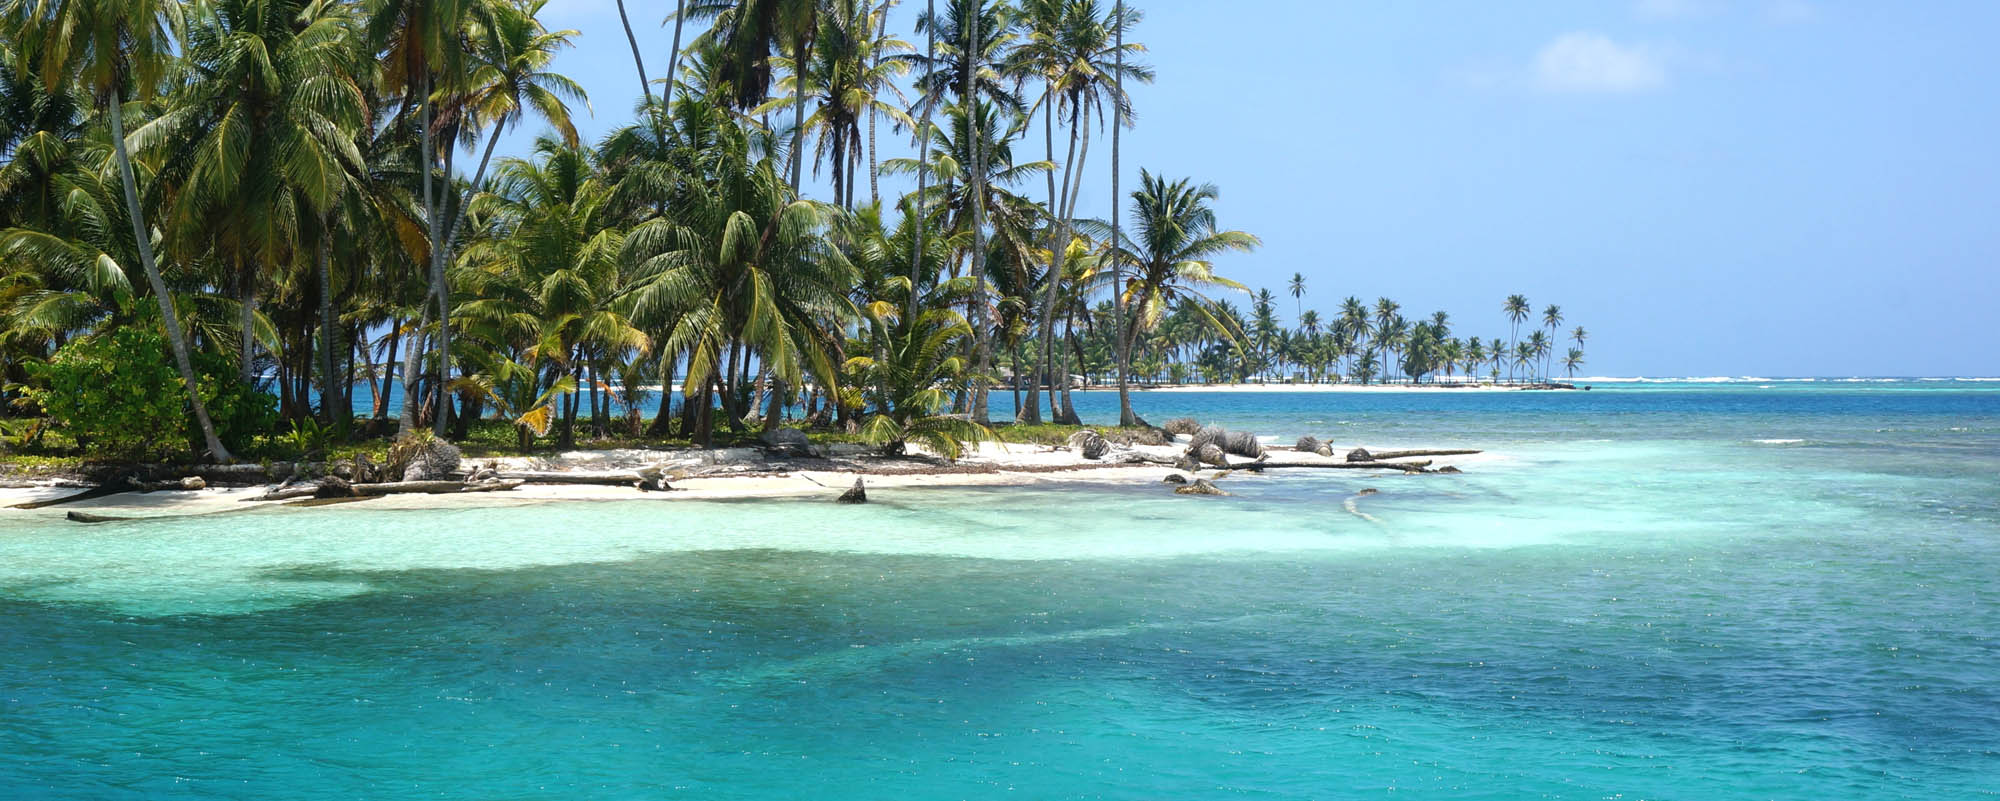 San Blas Islands Hotels Resorts Kuna Lodges C Lodge Porvenir Island